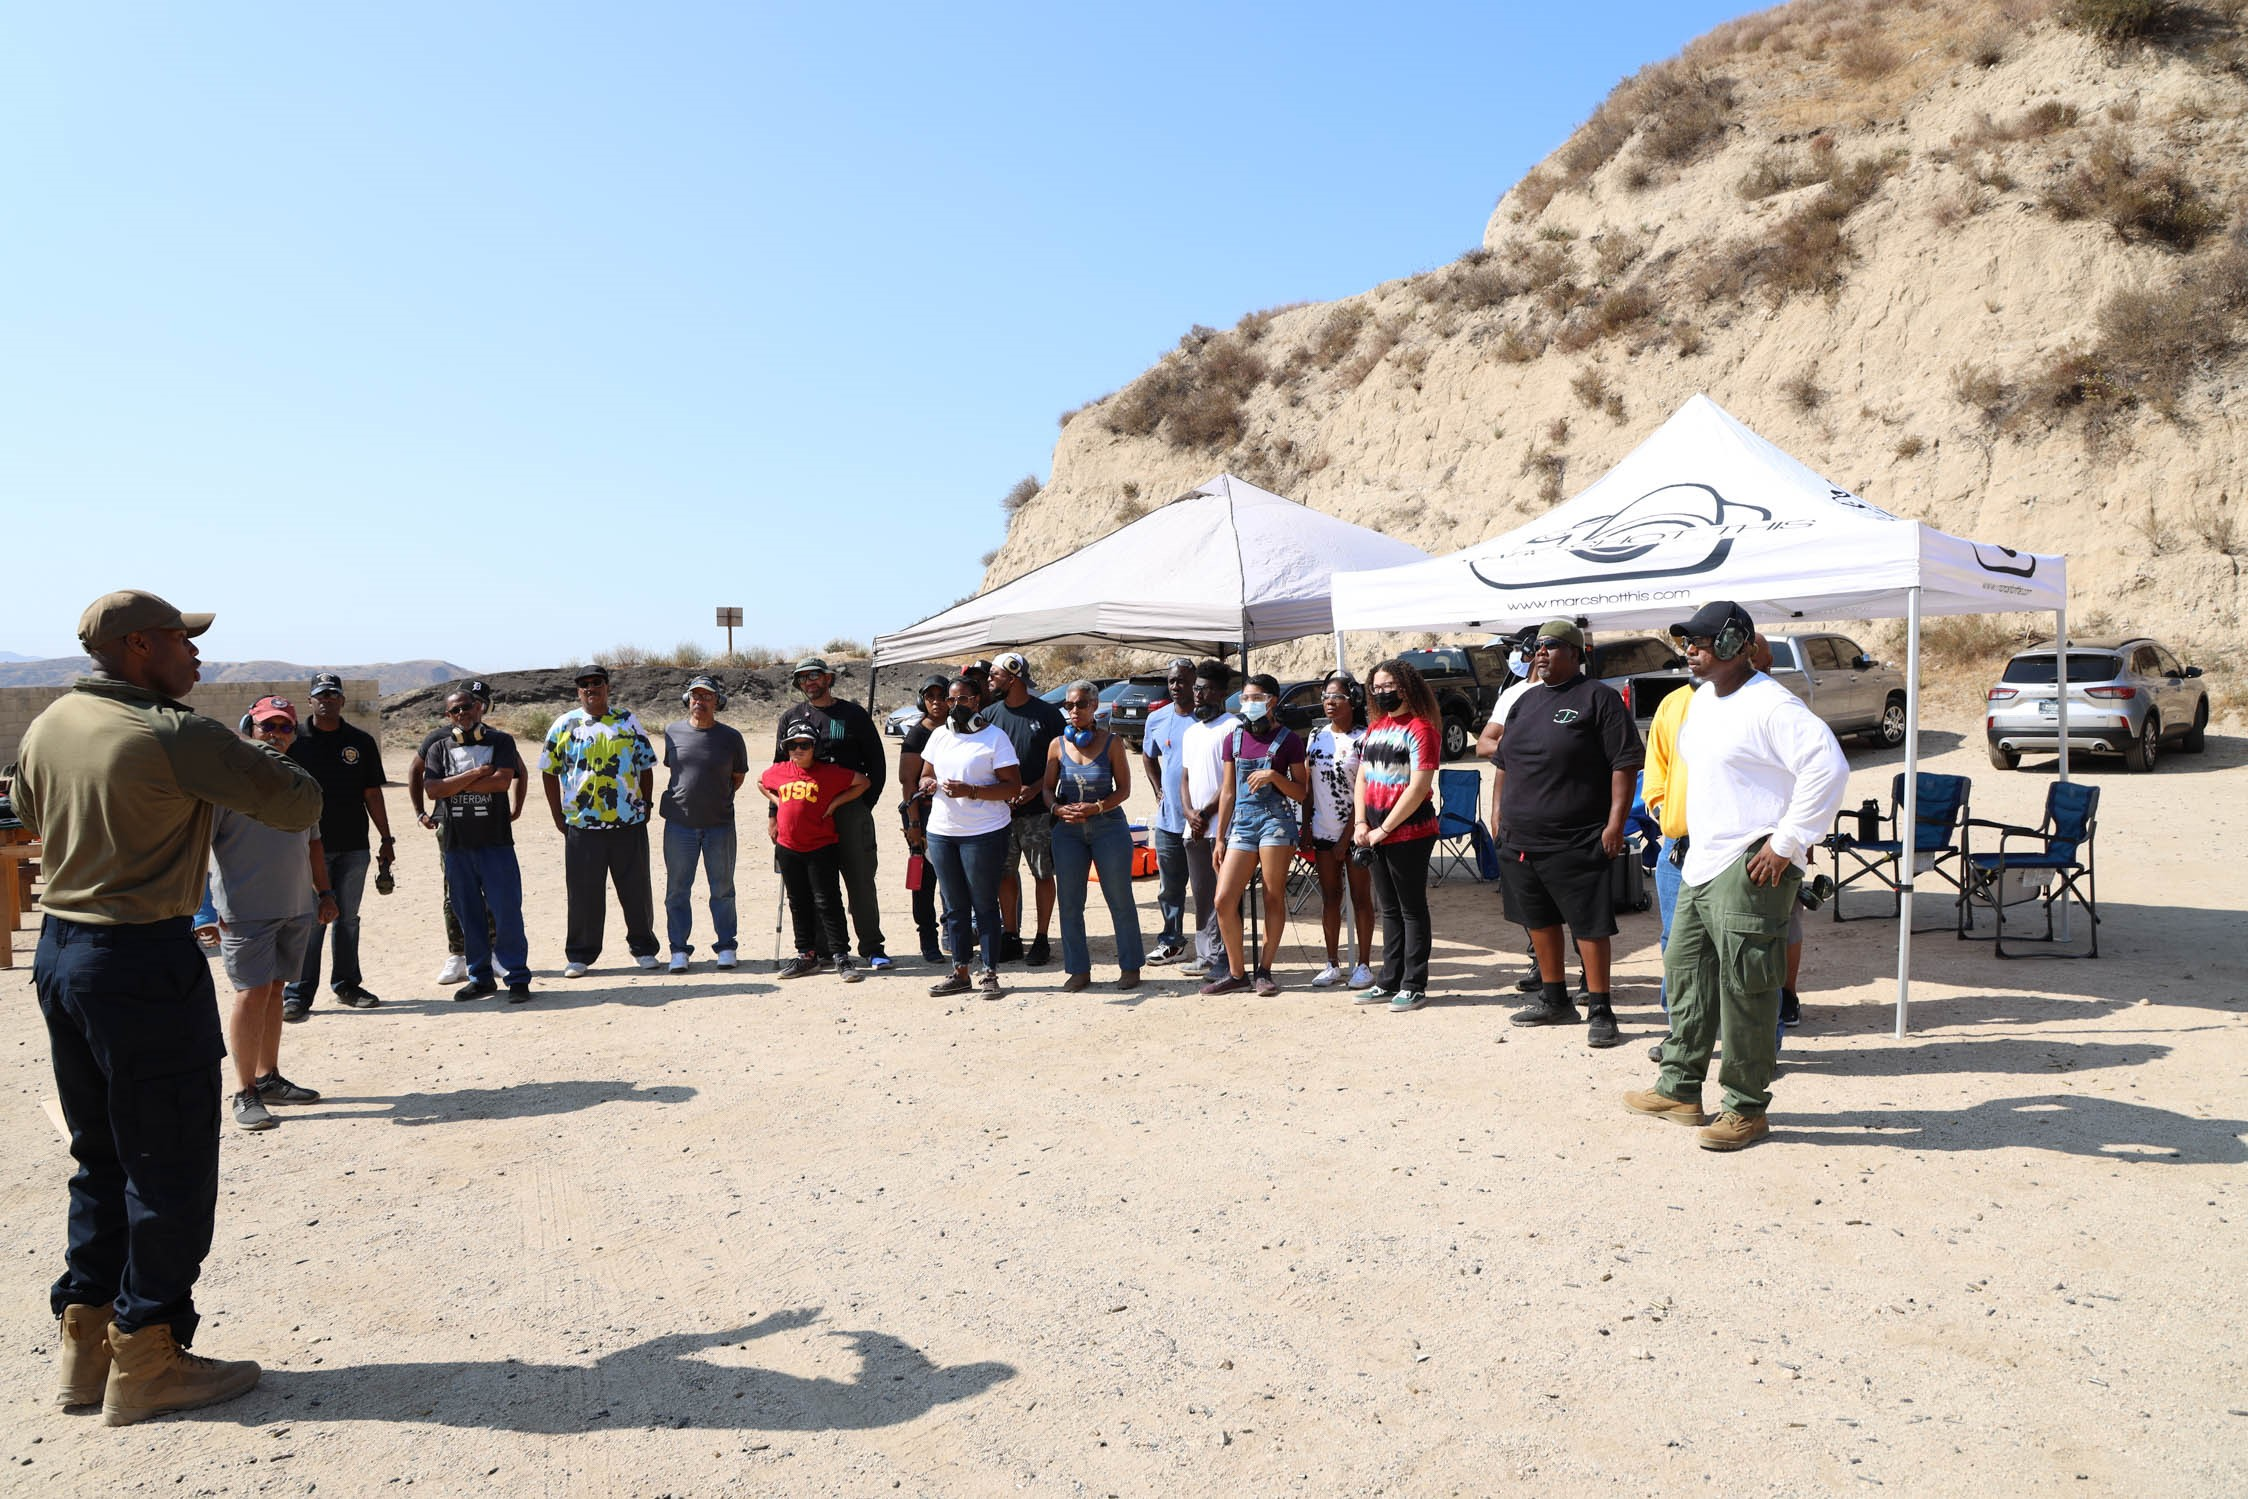 A group of over 30 individuals are standing in the desert with a ridge in the background there are various tables and two easy up tents set up.